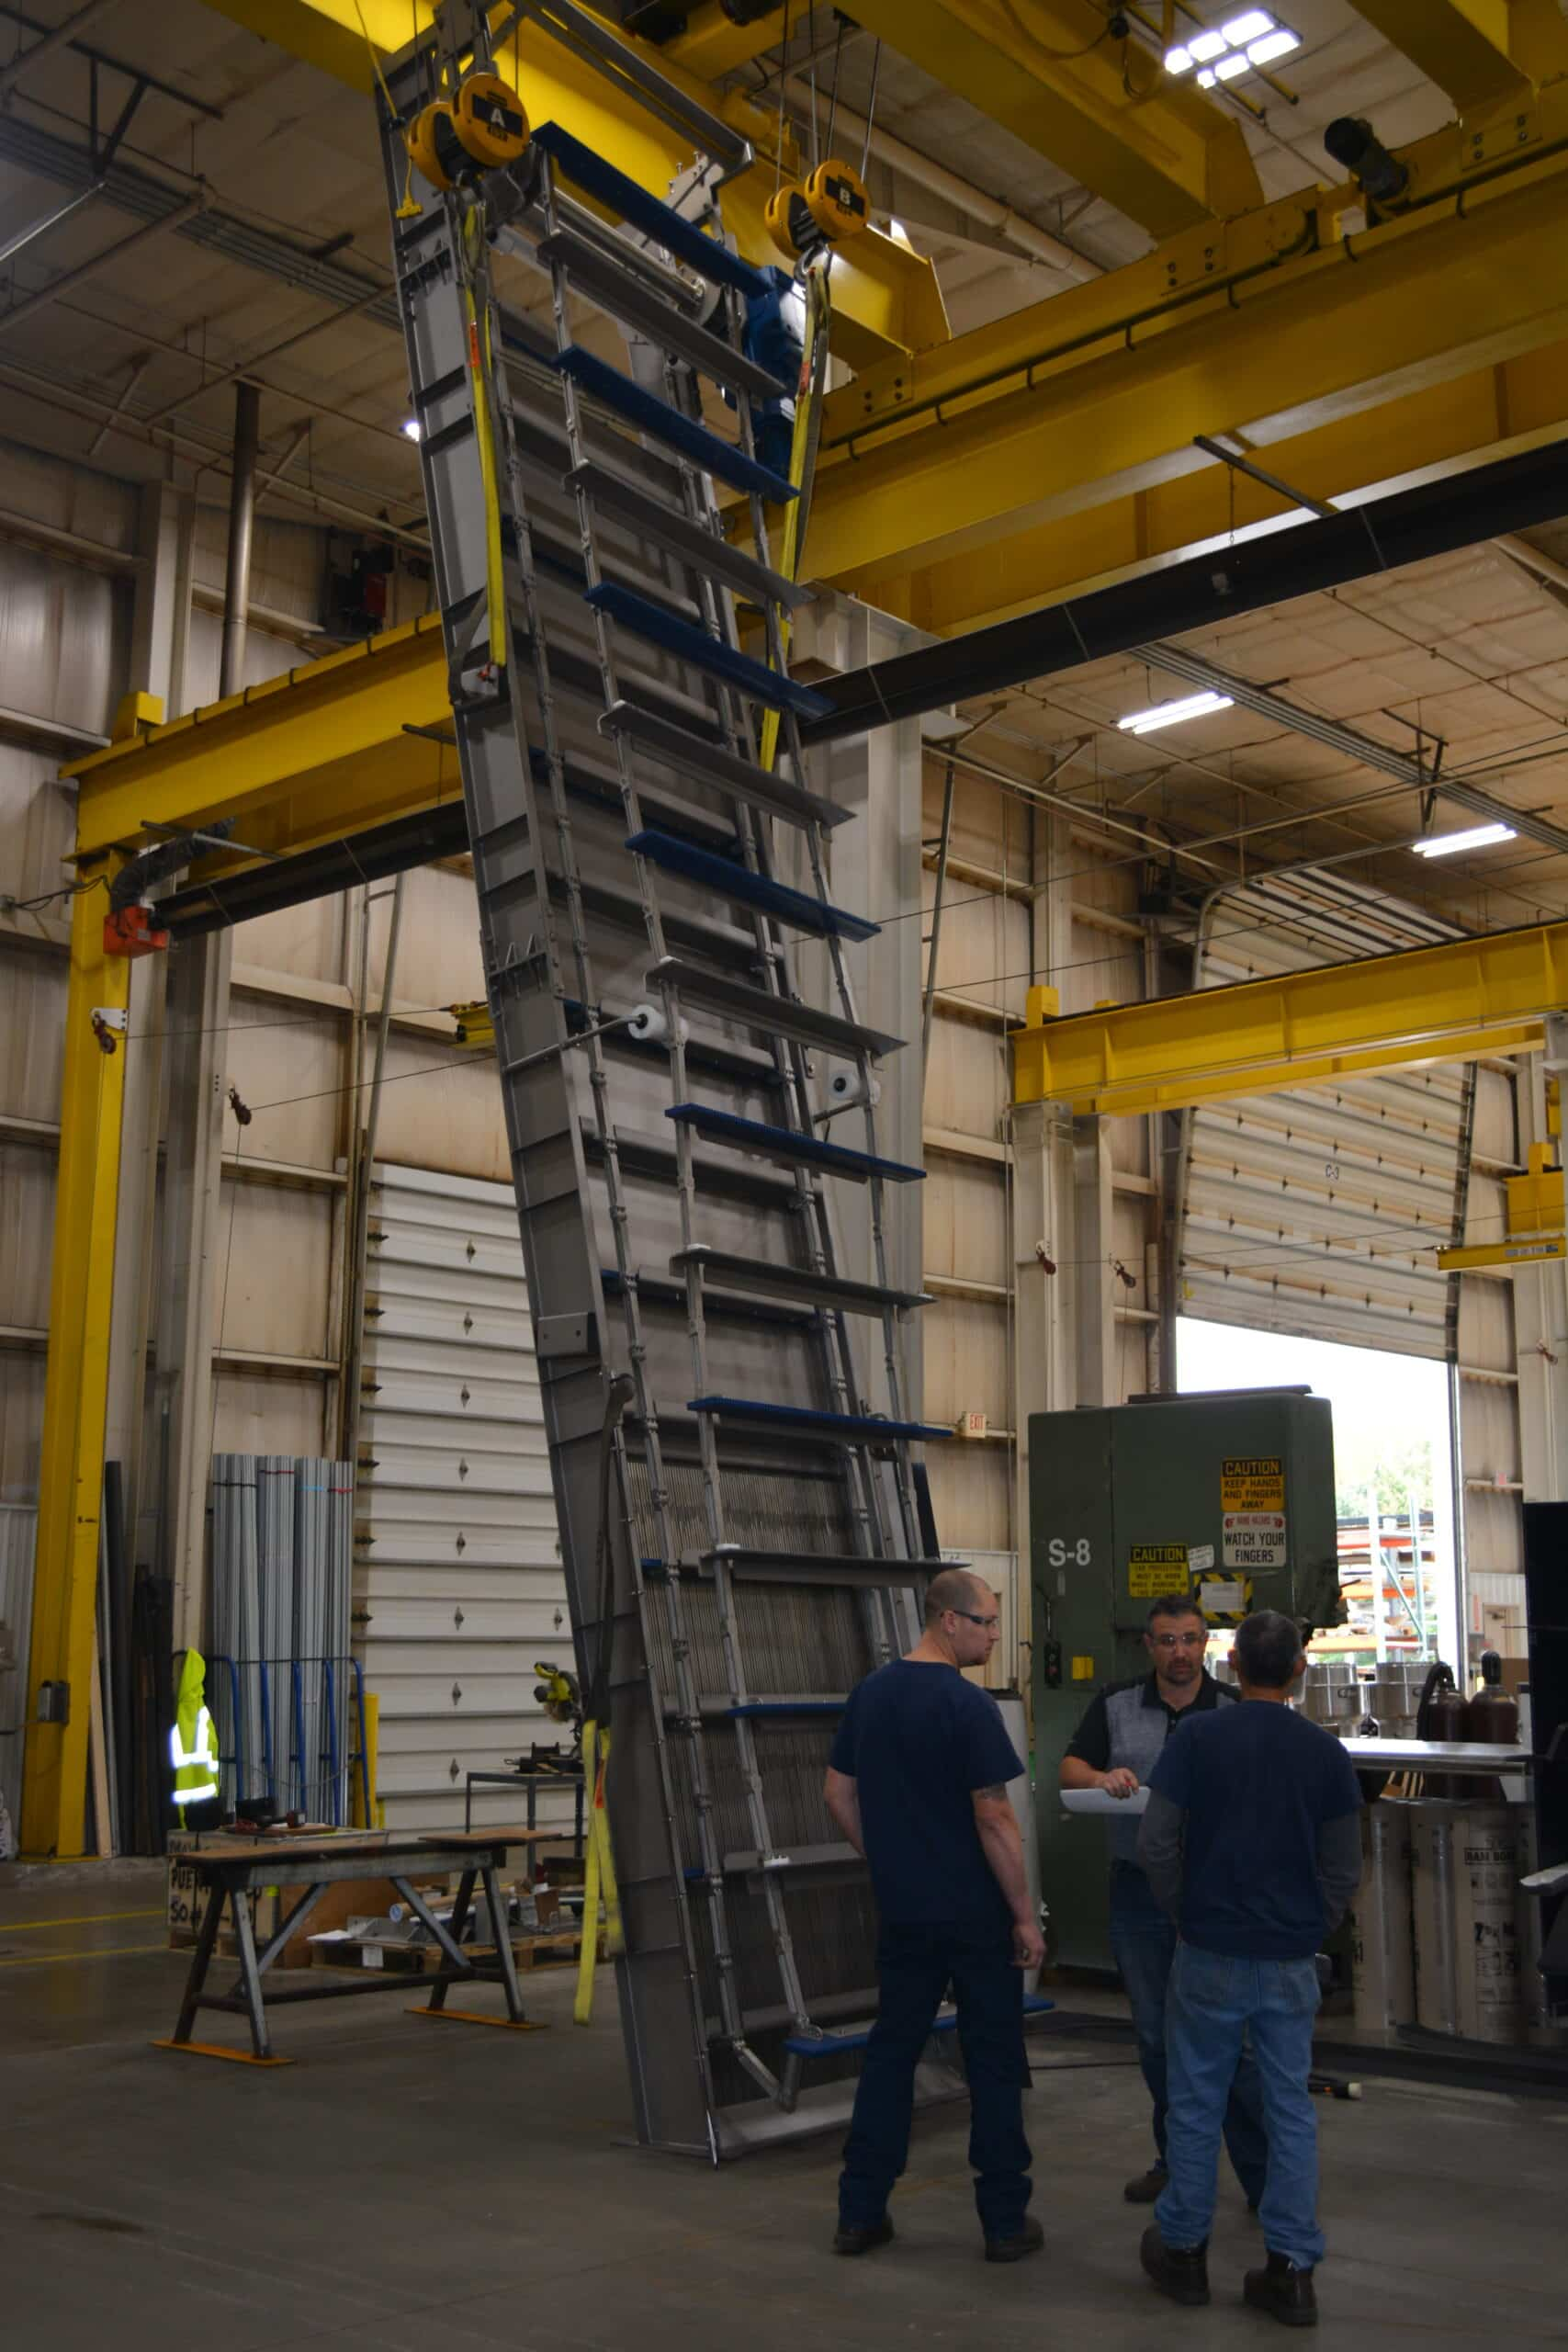 Fabrication jobs in Green Bay are available at Robinson Metal, Inc.